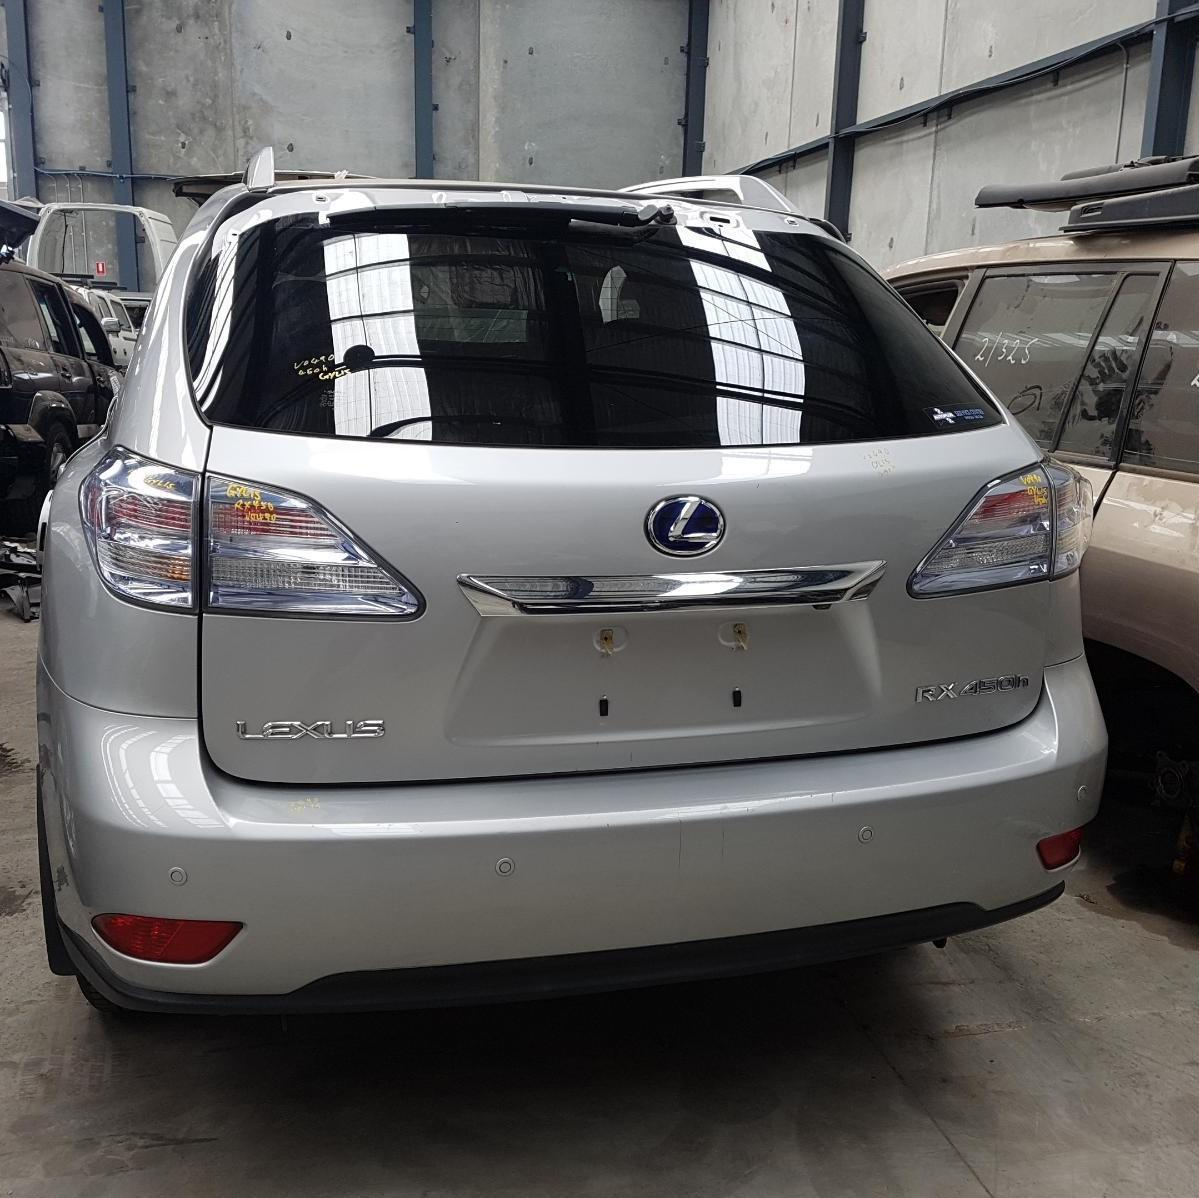 LEXUS RX350, Rear Garnish, TAILGATE GARNISH, GGL1#, 03/09-05/12